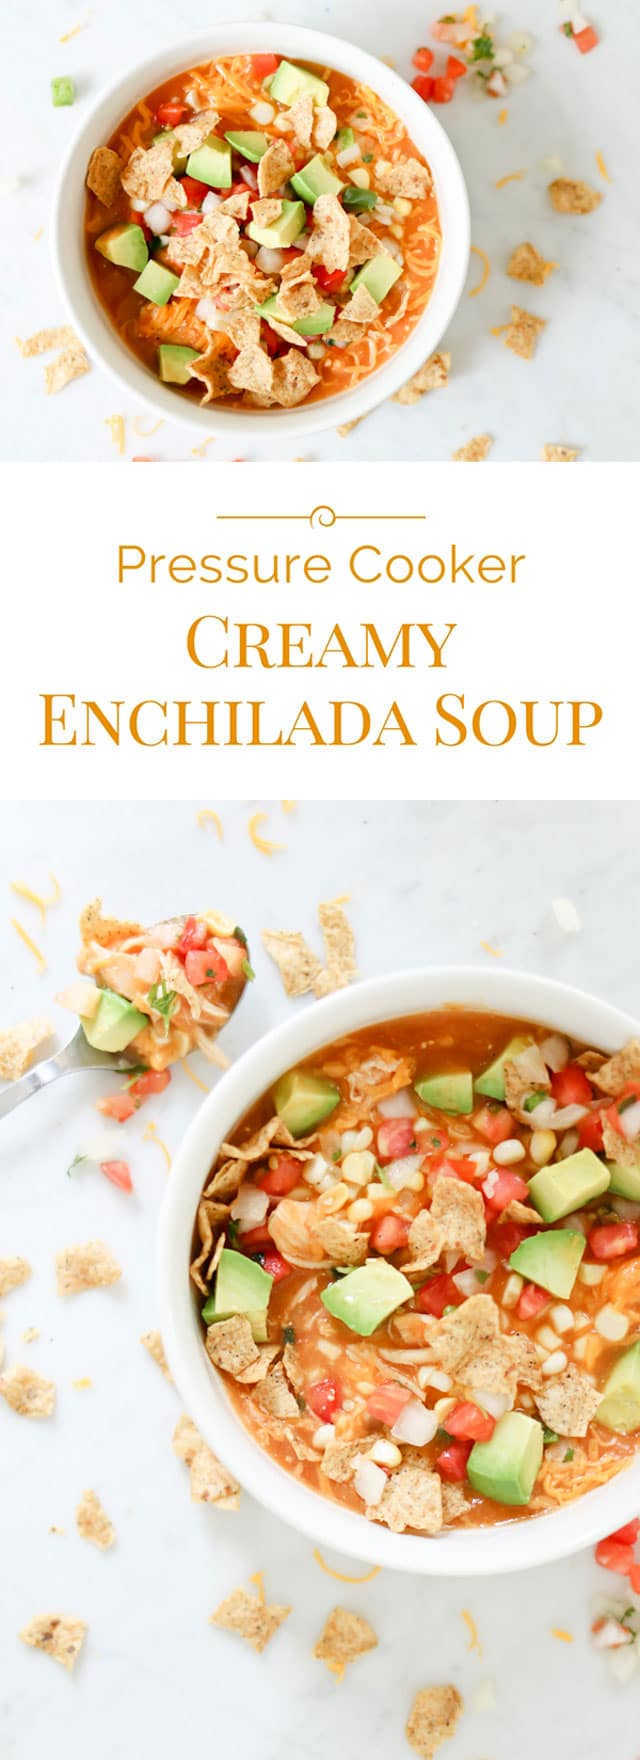 photo collage of Pressure Cooker Creamy Enchilada Soup.